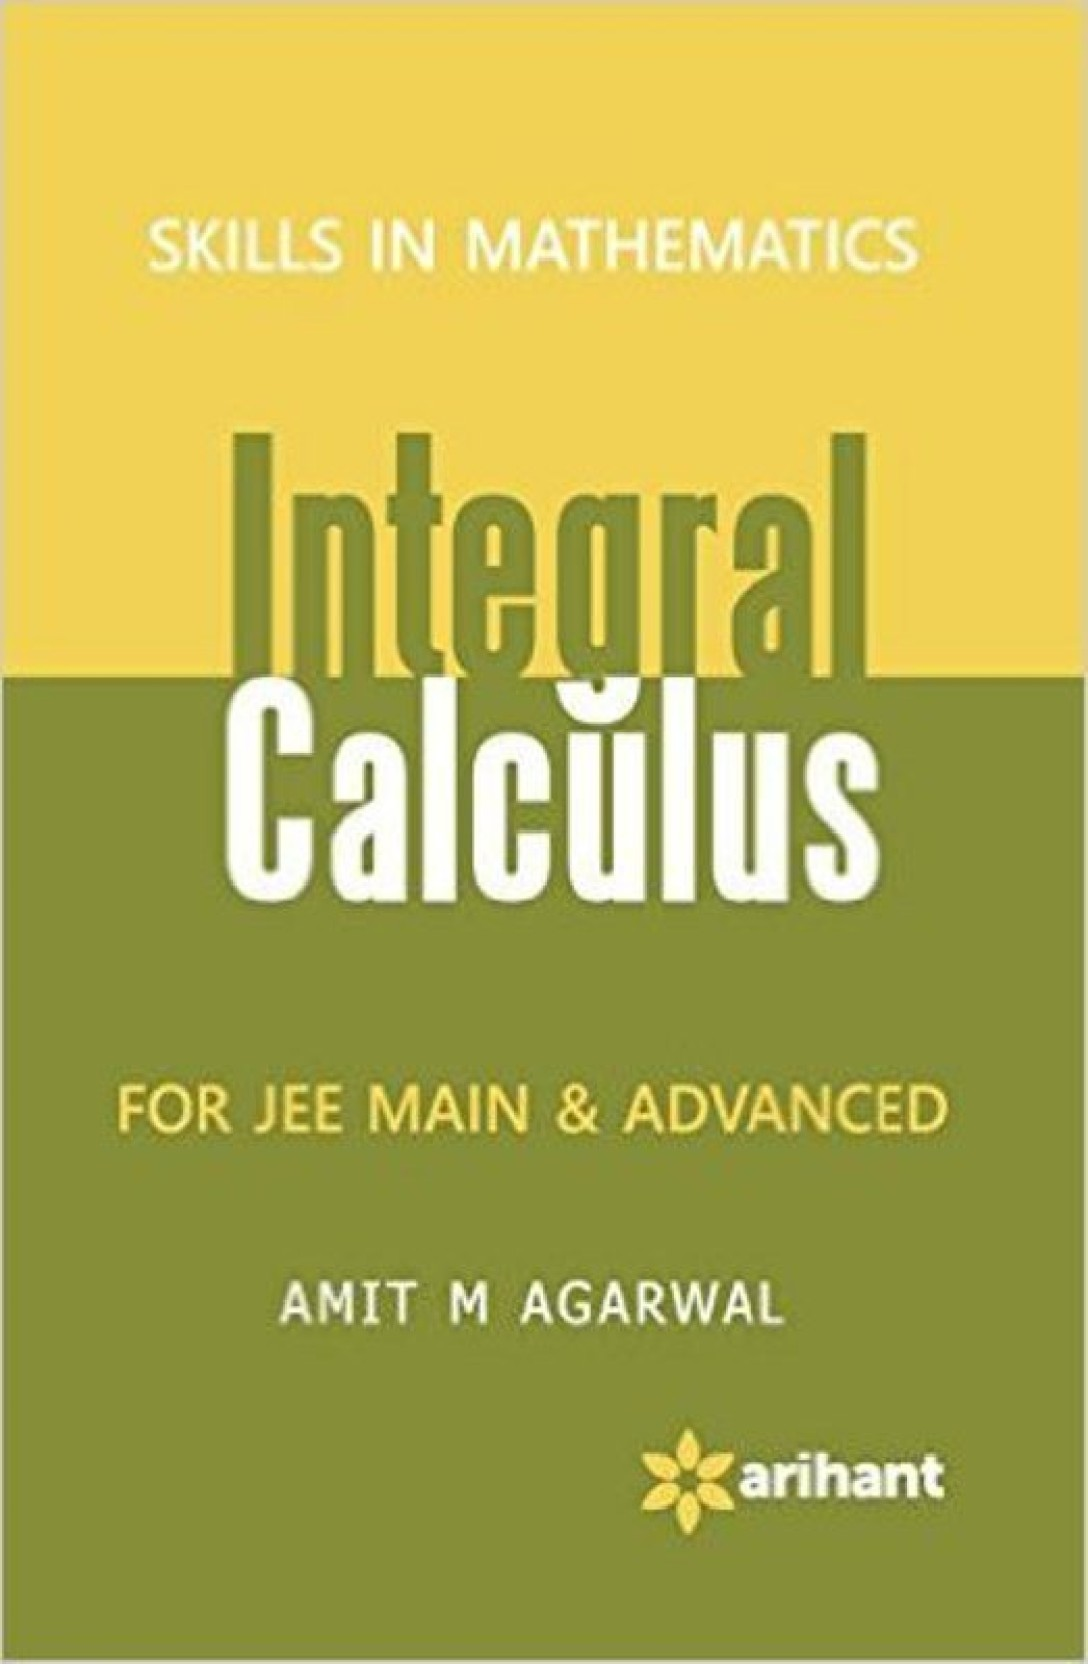 Skills In Mathematics - INTEGRAL CALCULUS for JEE Main & Advanced ...